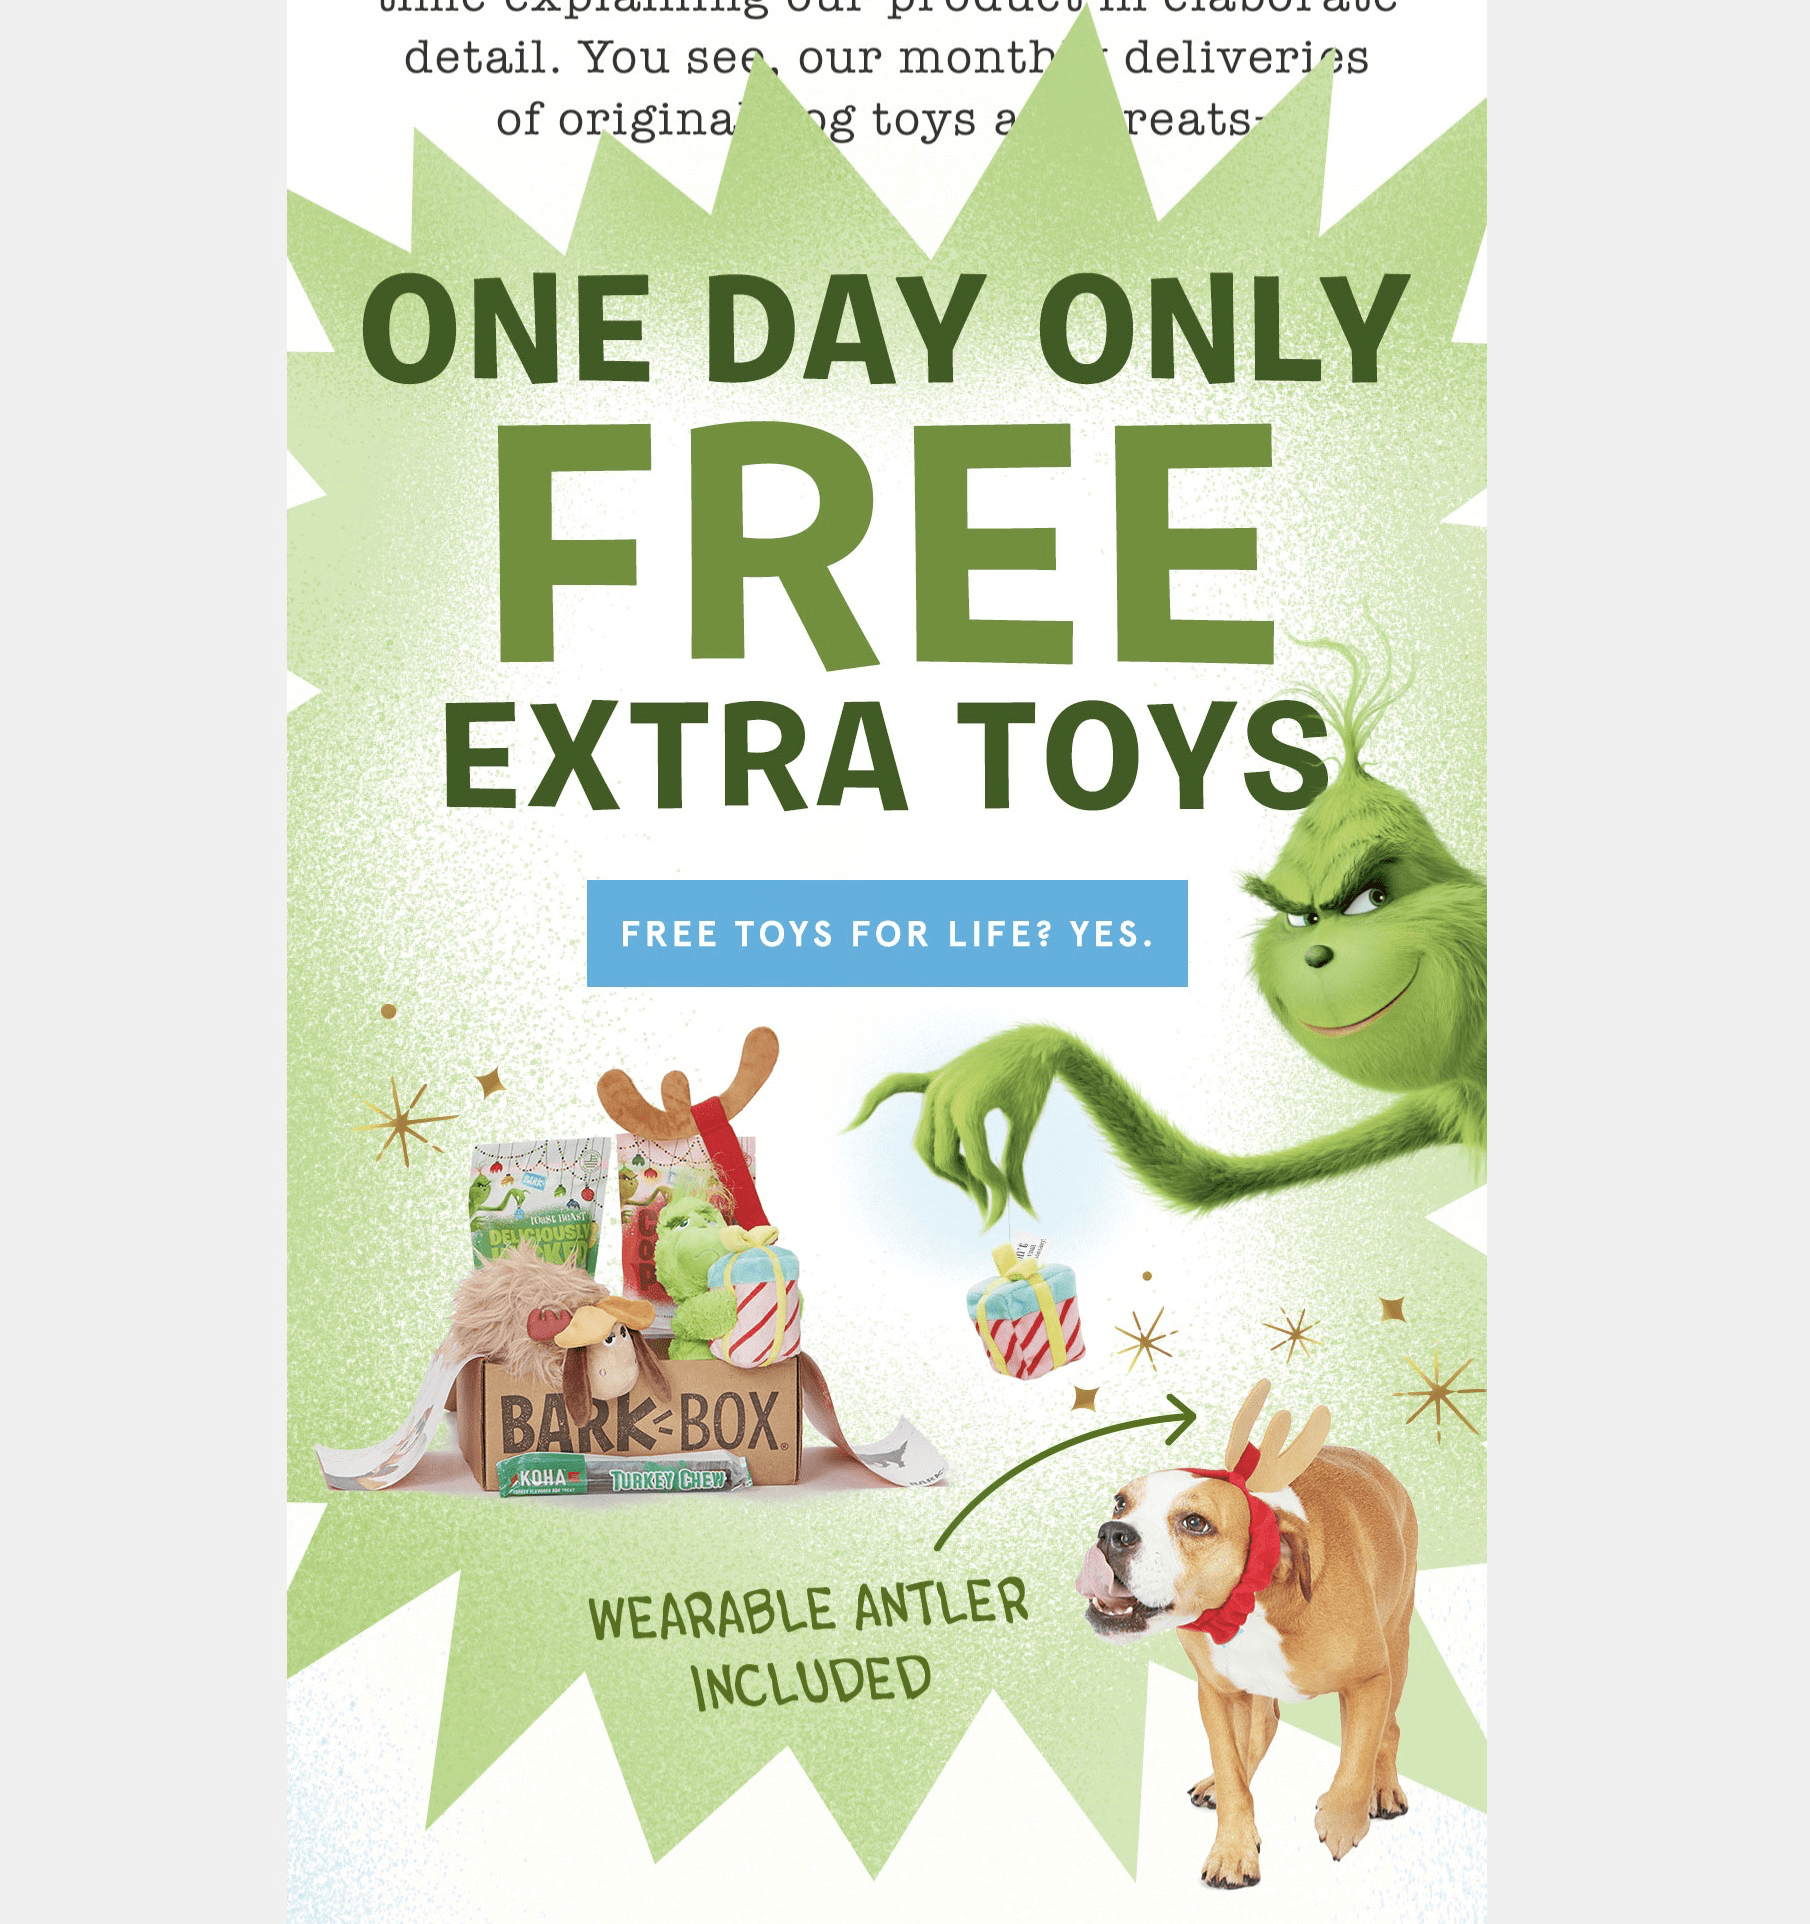 BarkBox Cyber Monday Coupon: Get FREE Bonus Toy Every Month! FUREVER!